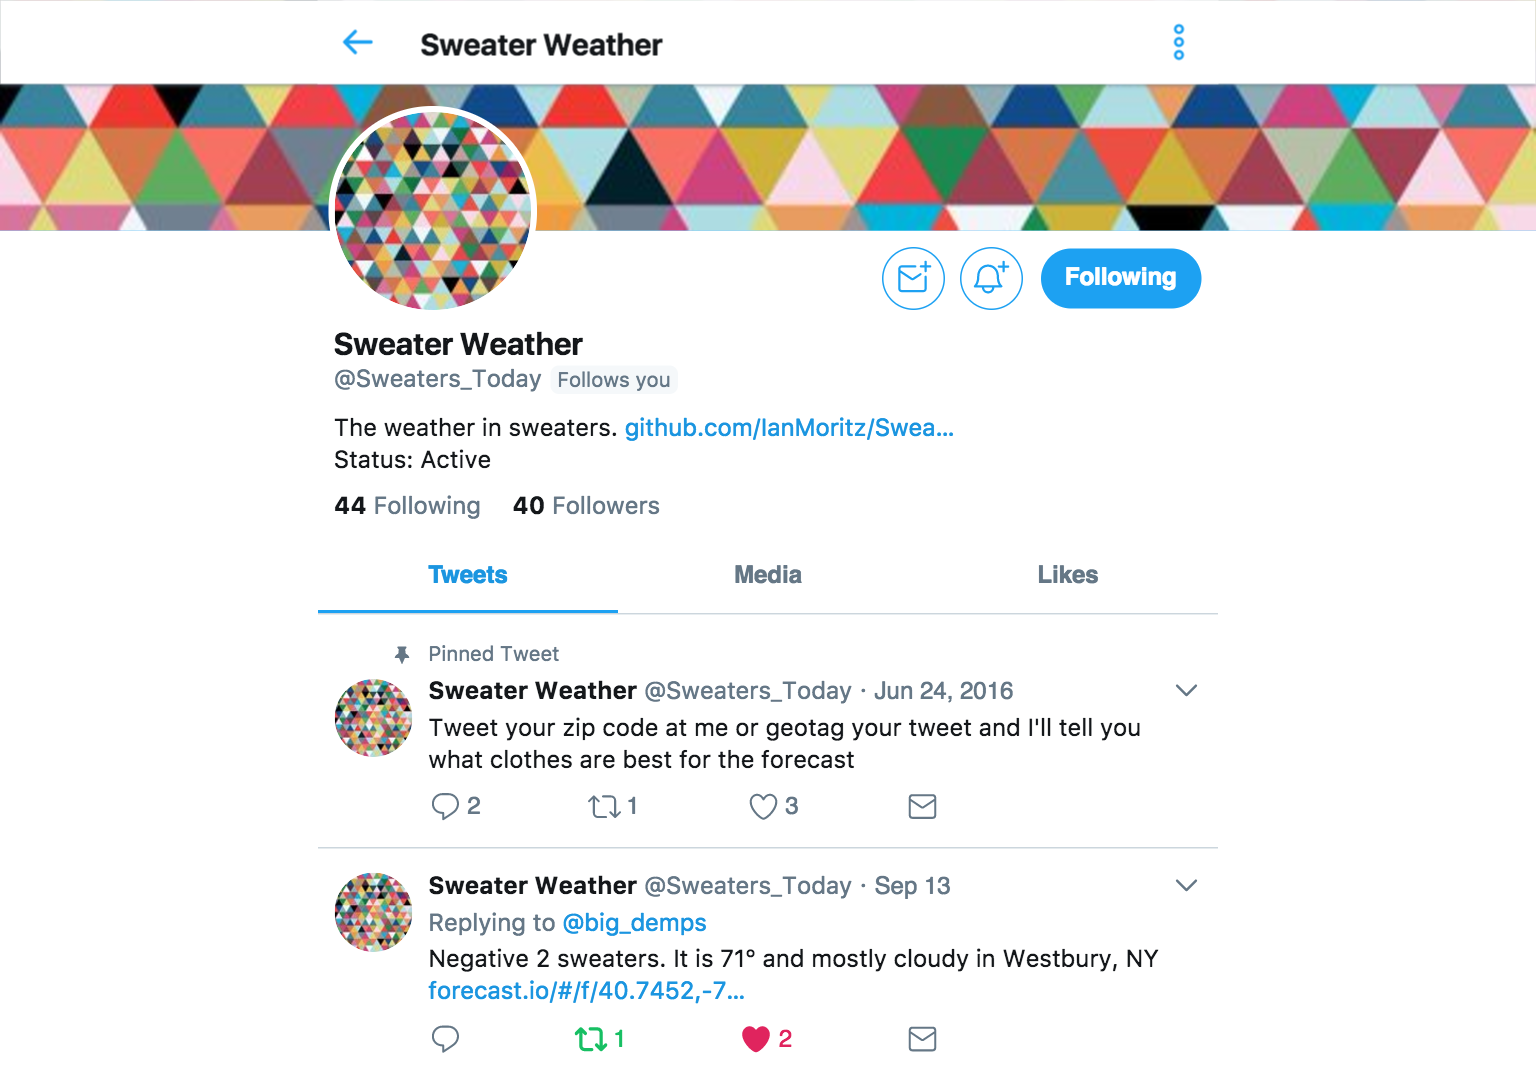 Sweater Weather Twitter Bot